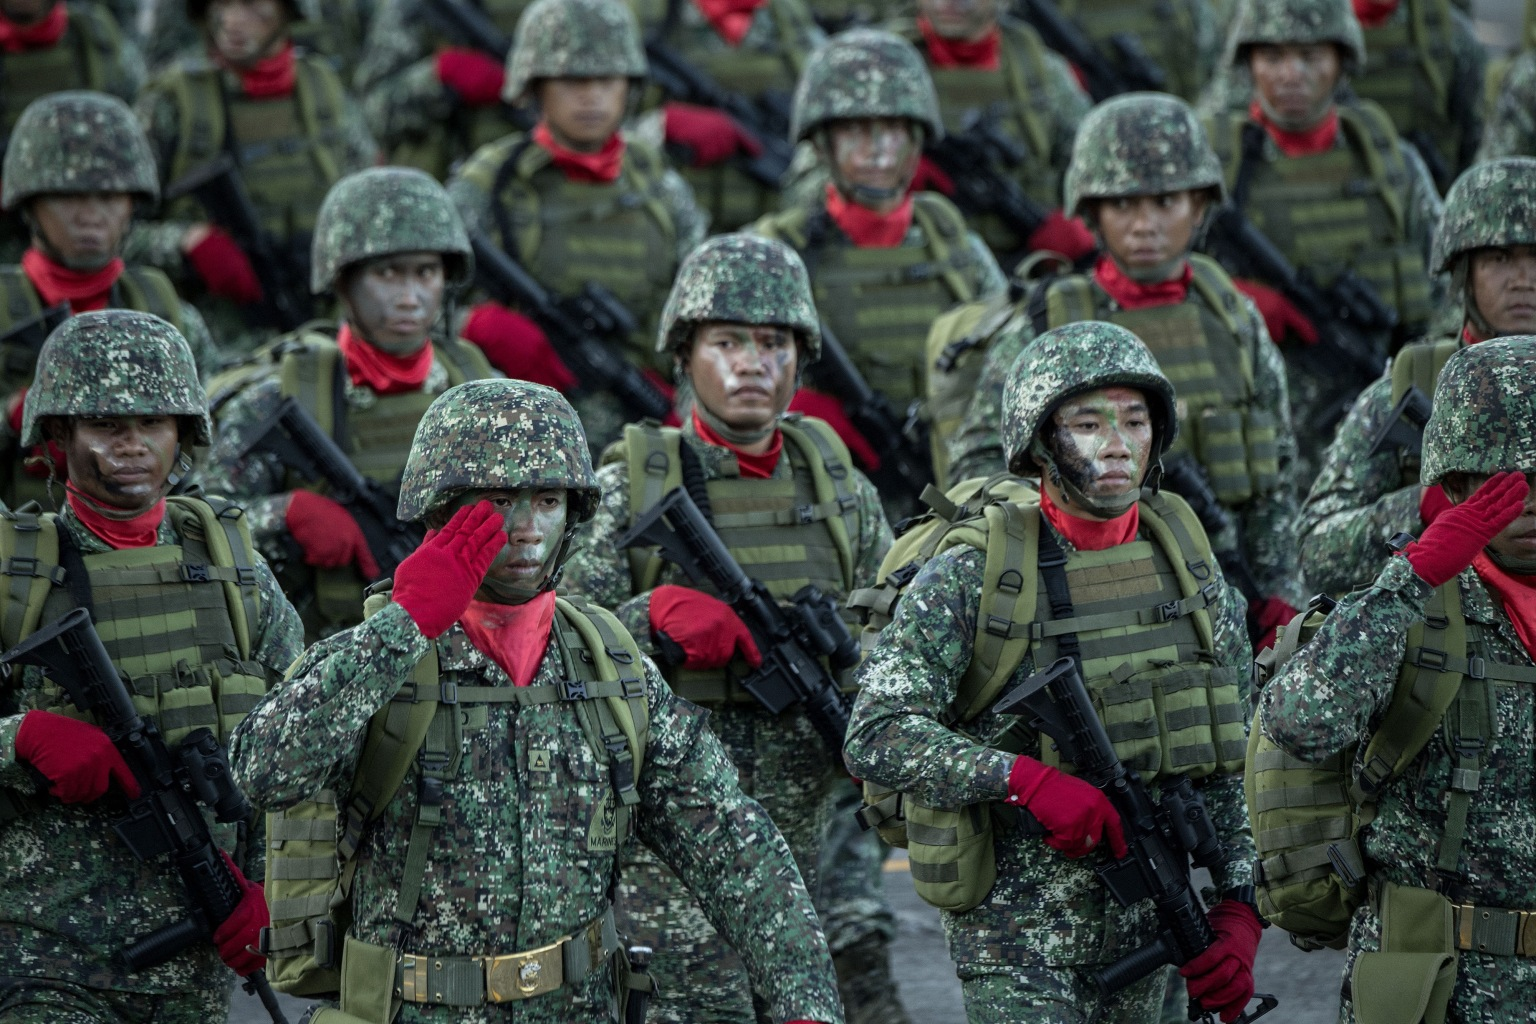 Philippine soldiers march in formation during a change-of-command ceremony in Manila's Camp Aguinaldo on April 18. NOEL CELIS/AFP/Getty Images